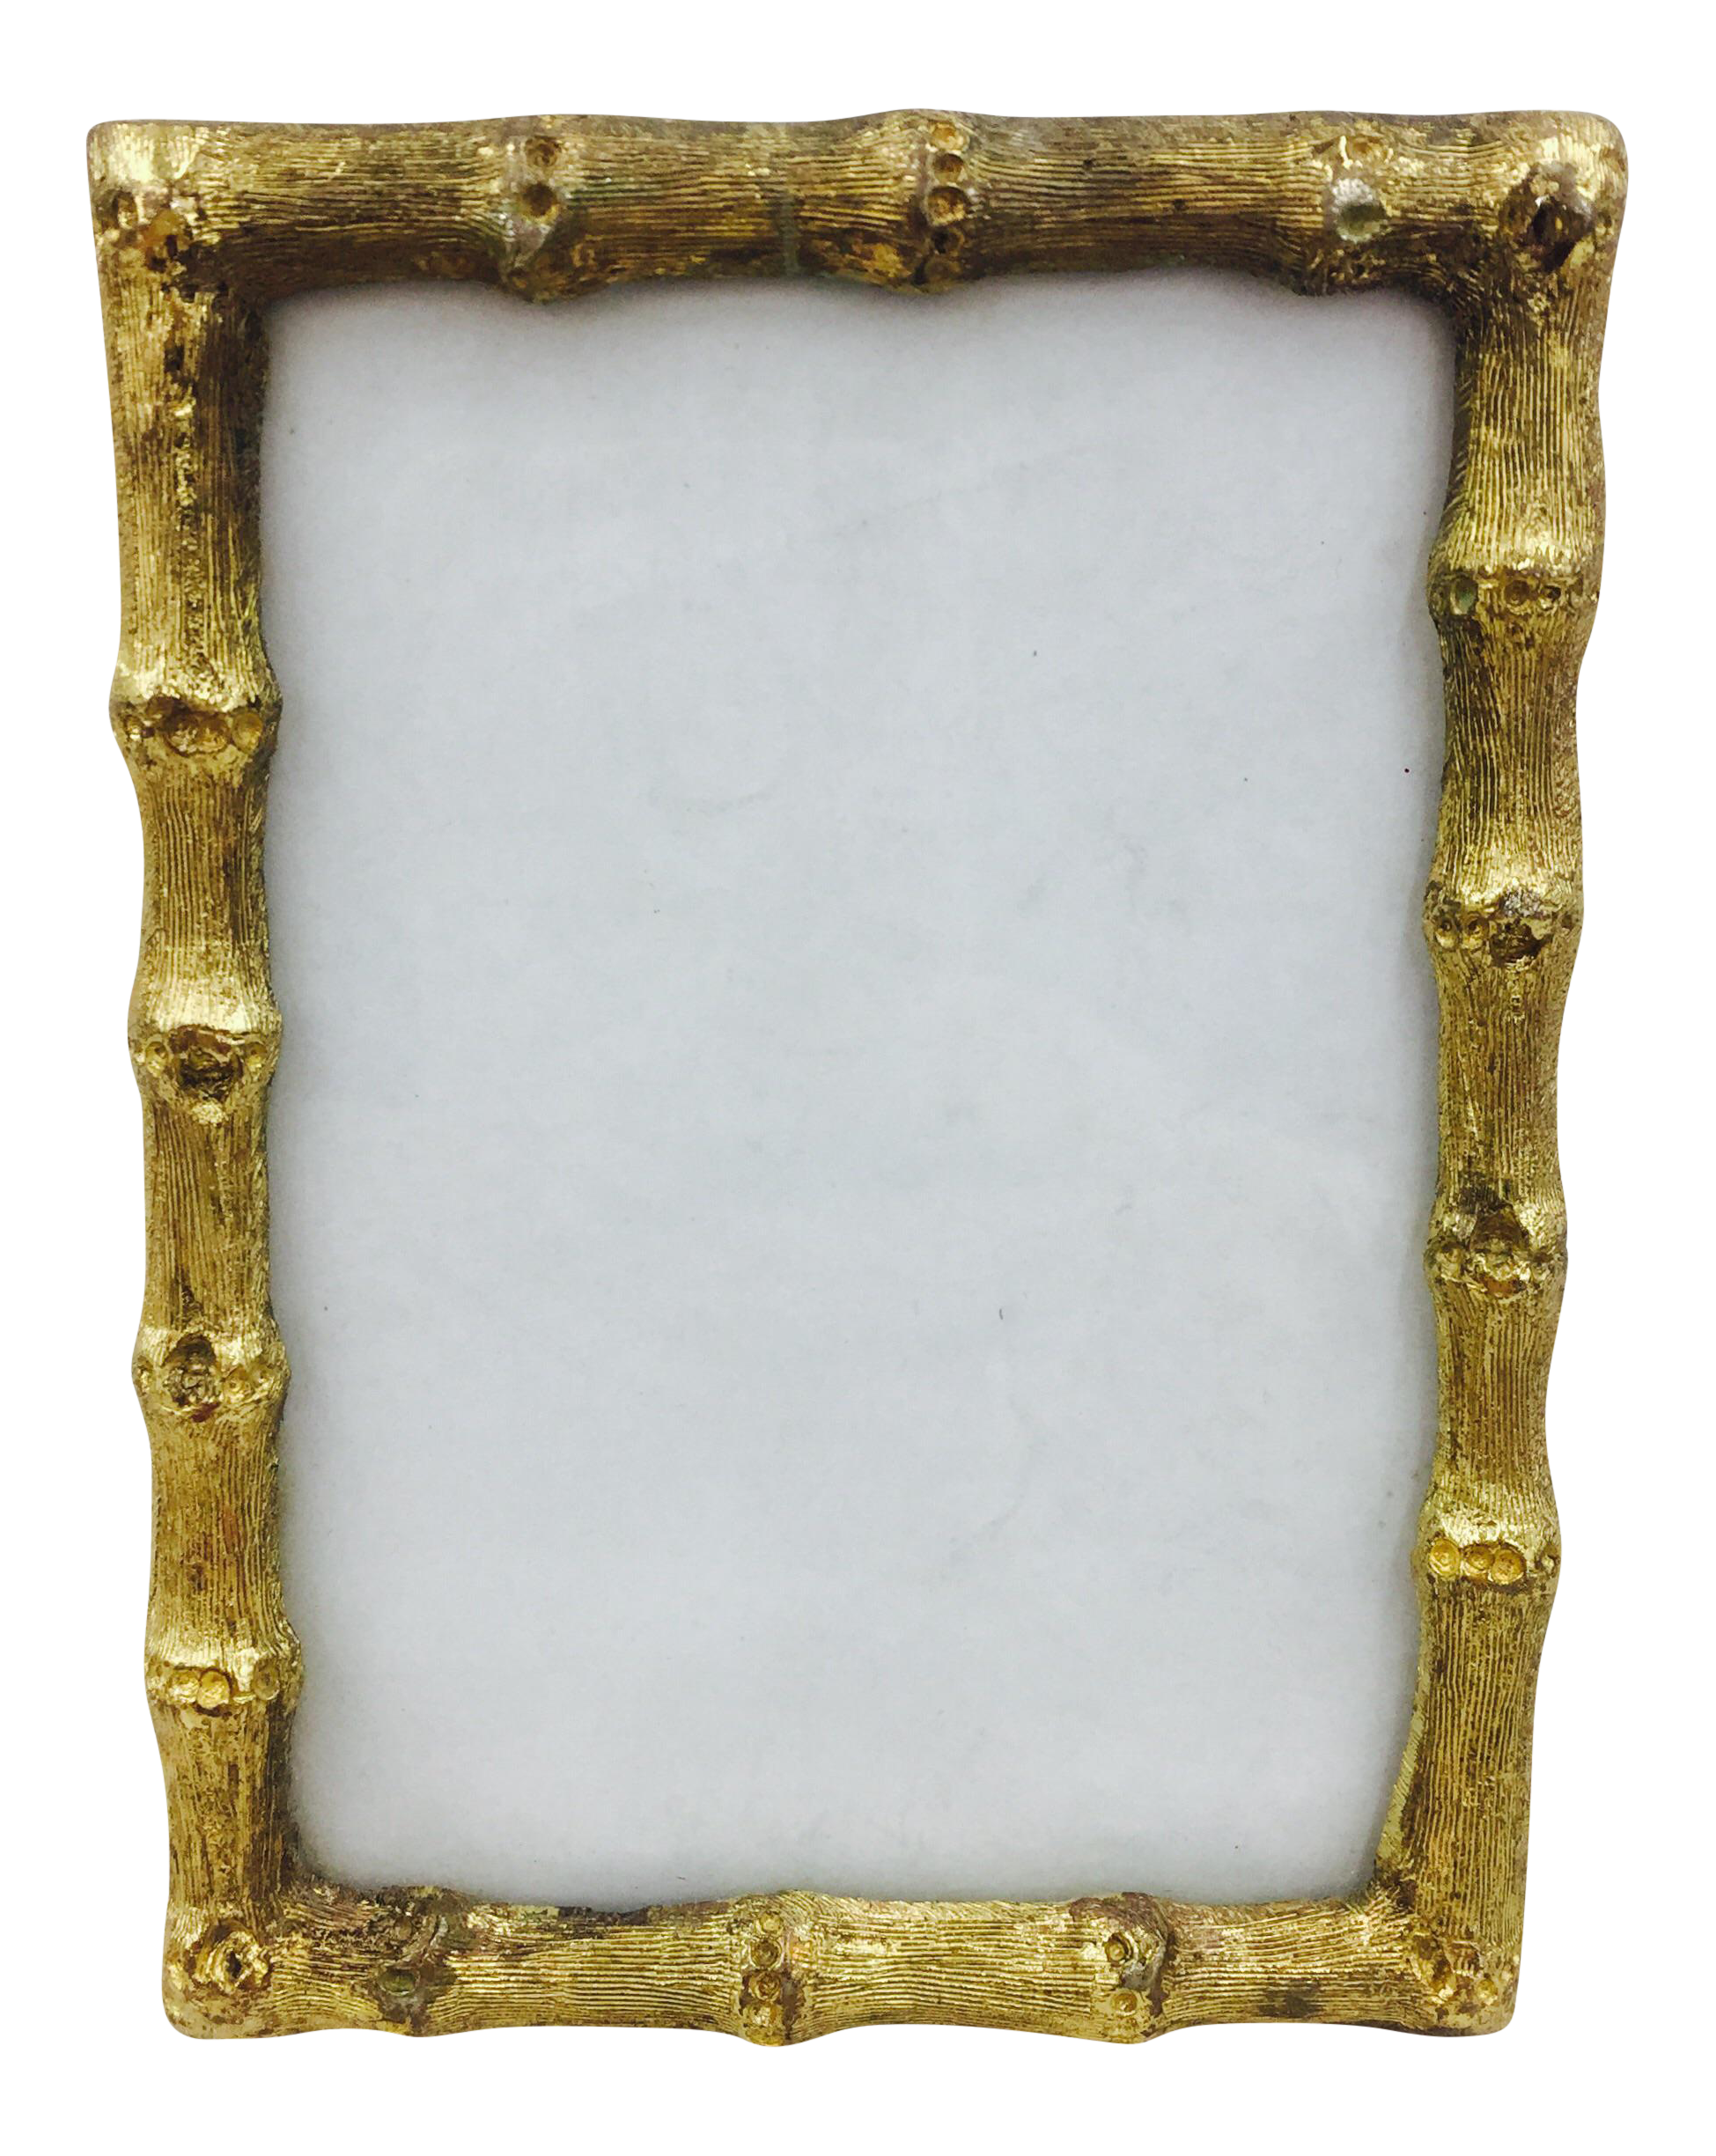 Hollywood Regency Gold Faux Bamboo Frame | Chairish